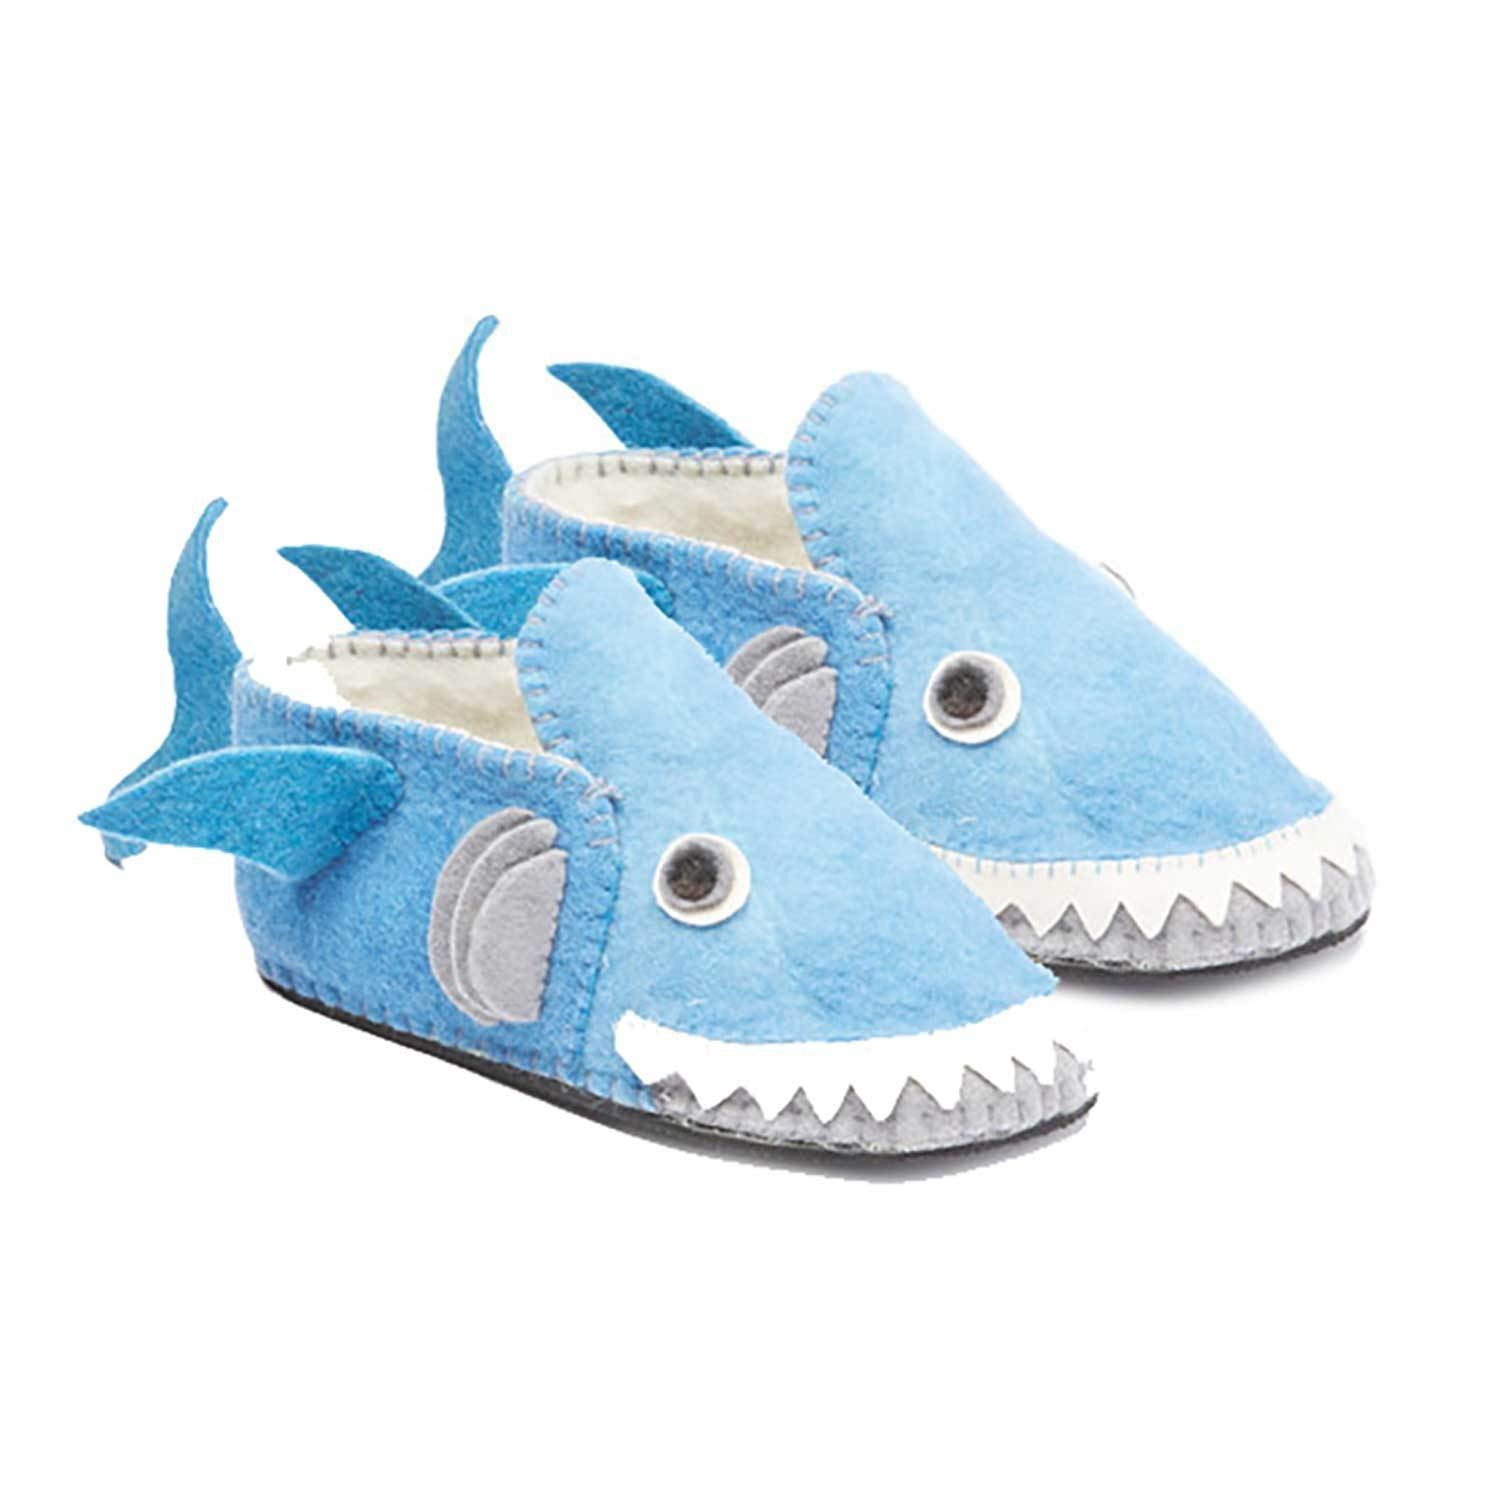 Blue Shark Slippers Adult - Silk Road Bazaar